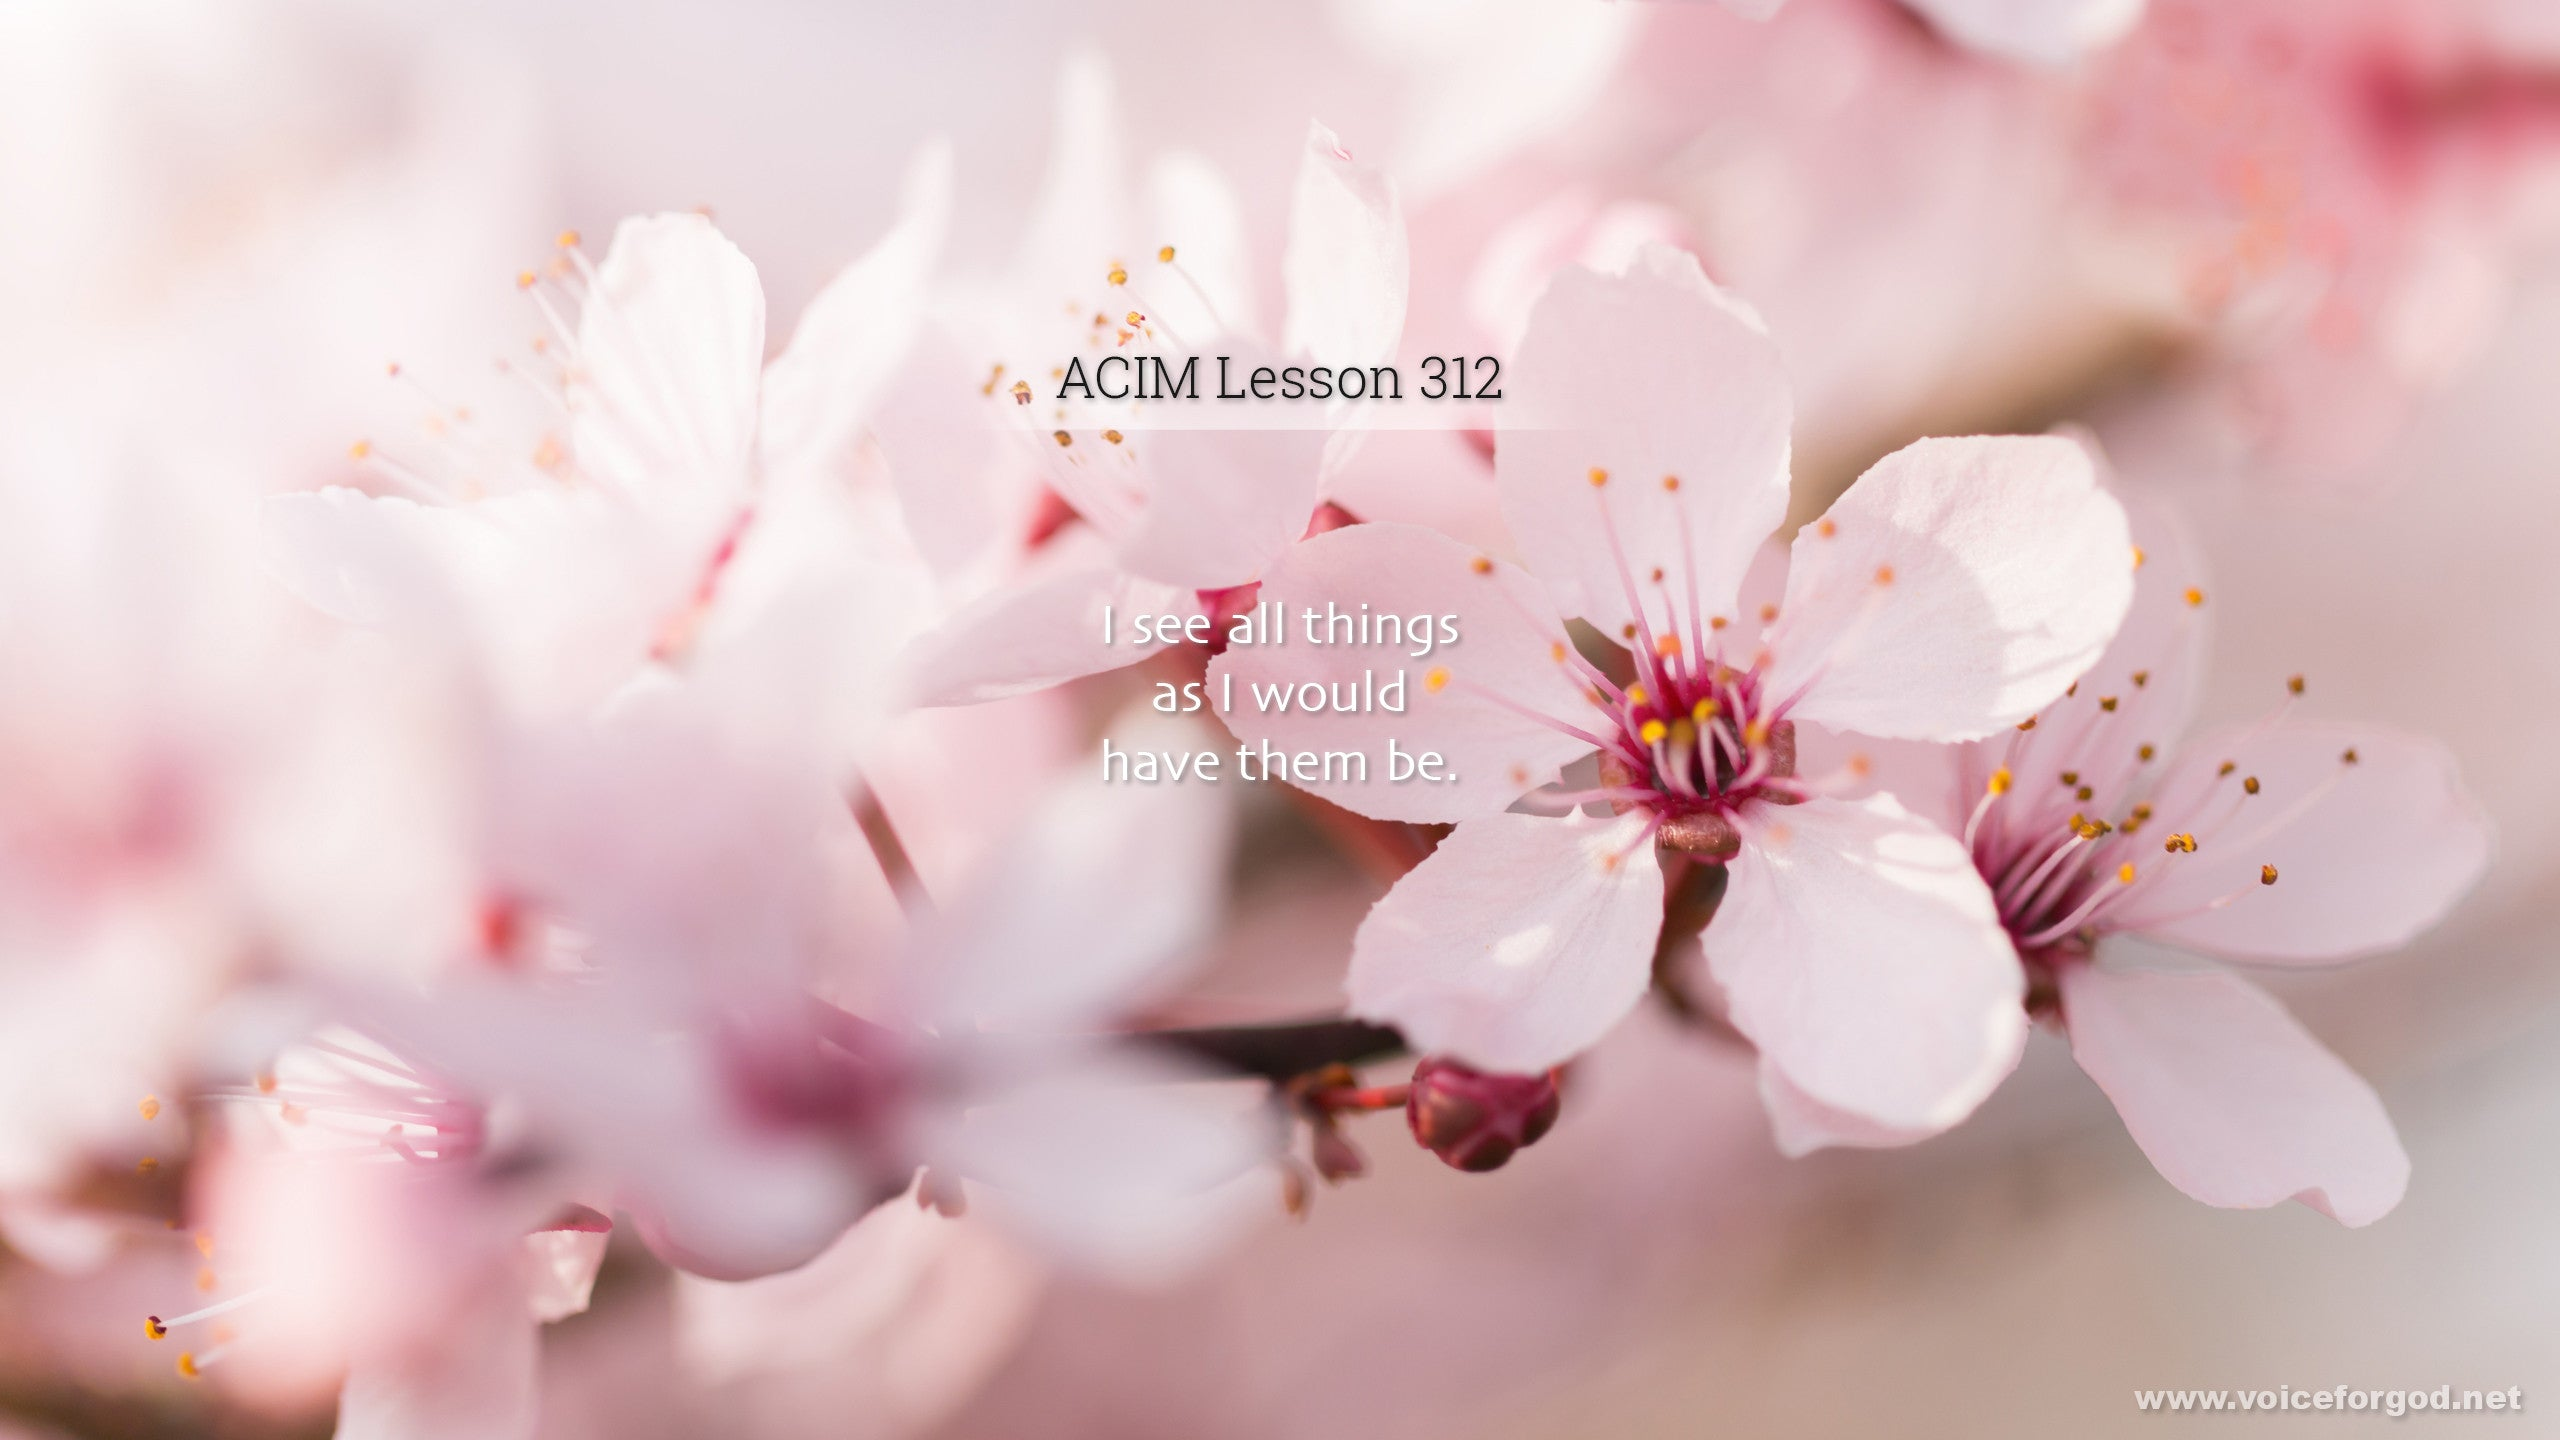 ACIM Lesson 312 - A Course in Miracles Workbook Lesson 312